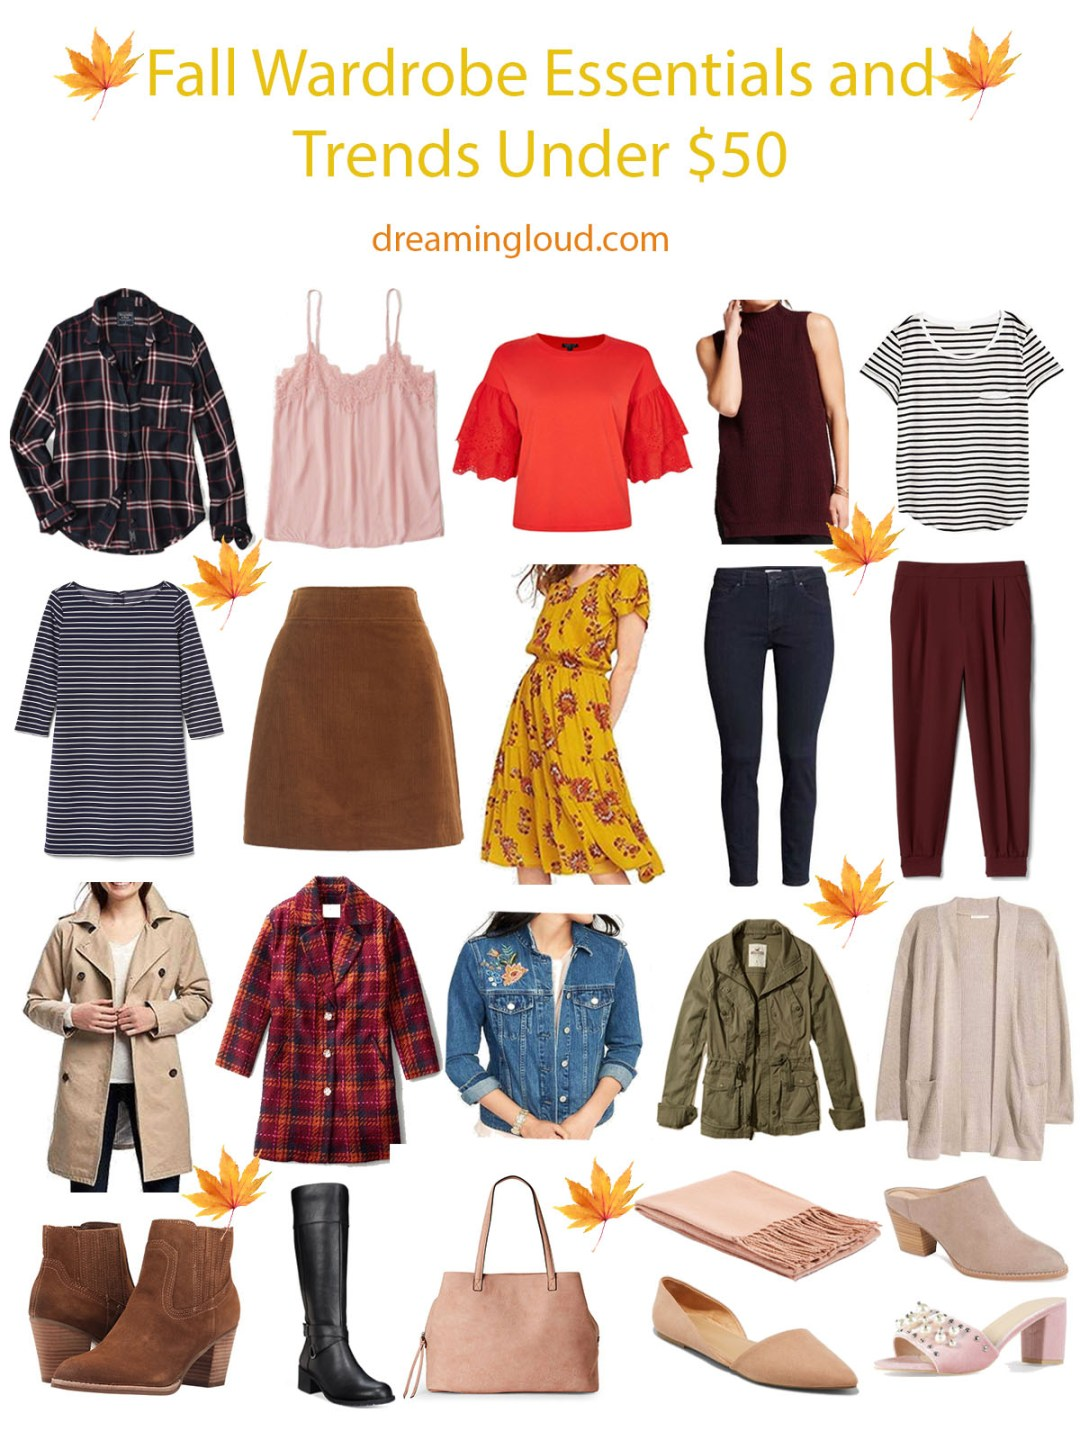 Fall-wardrobe-essentials-and-trends-2017-under-$50-dreaming-loud-1